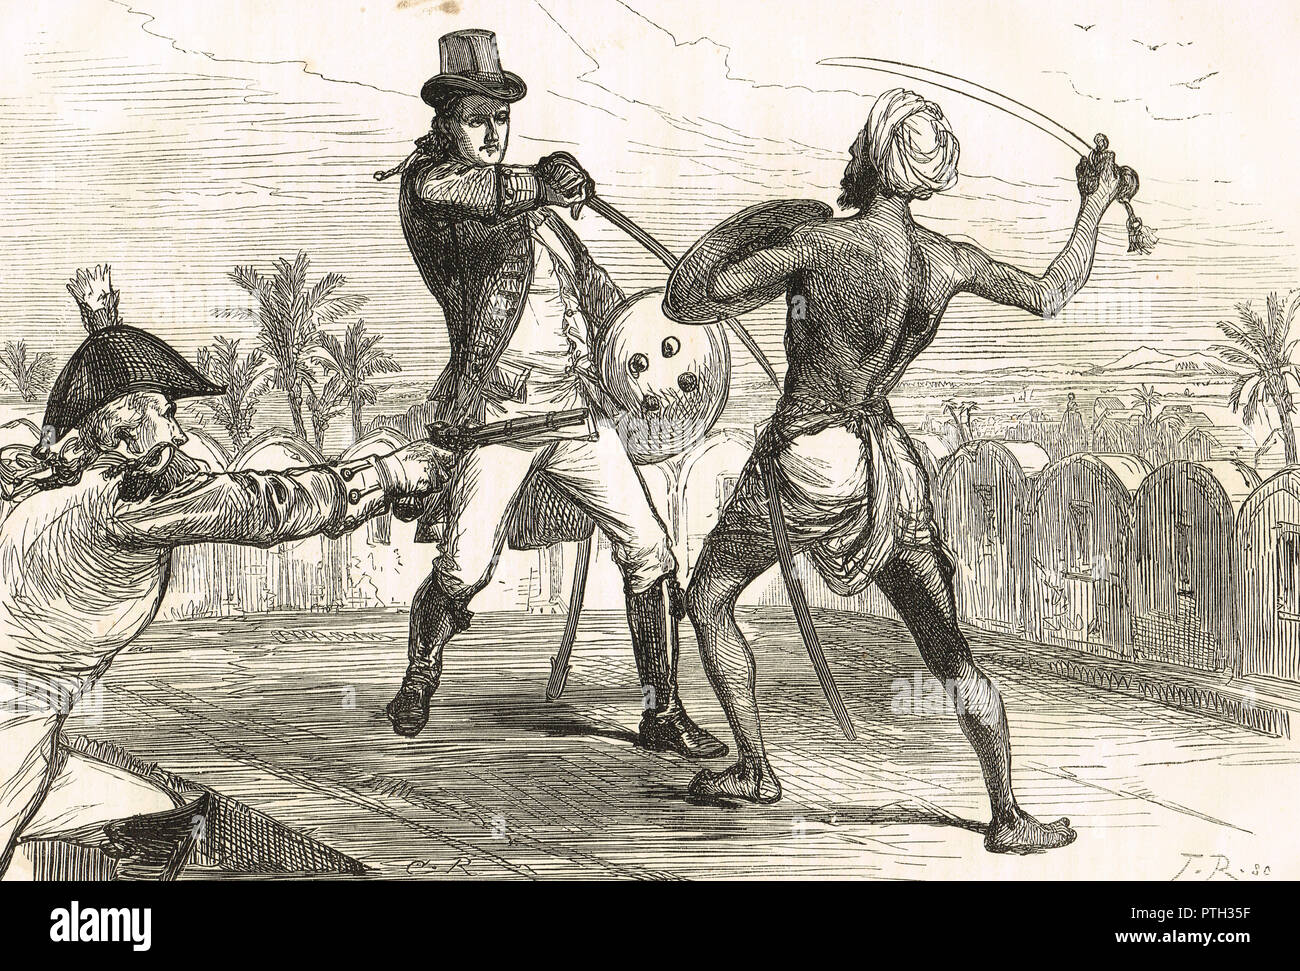 Hon. Frederick shore a member of the Bengal Civil service, fighting a Goojur in hand to hand combat, during the Rebellion by Gujjars of Saharanpur, October 1824 - Stock Image